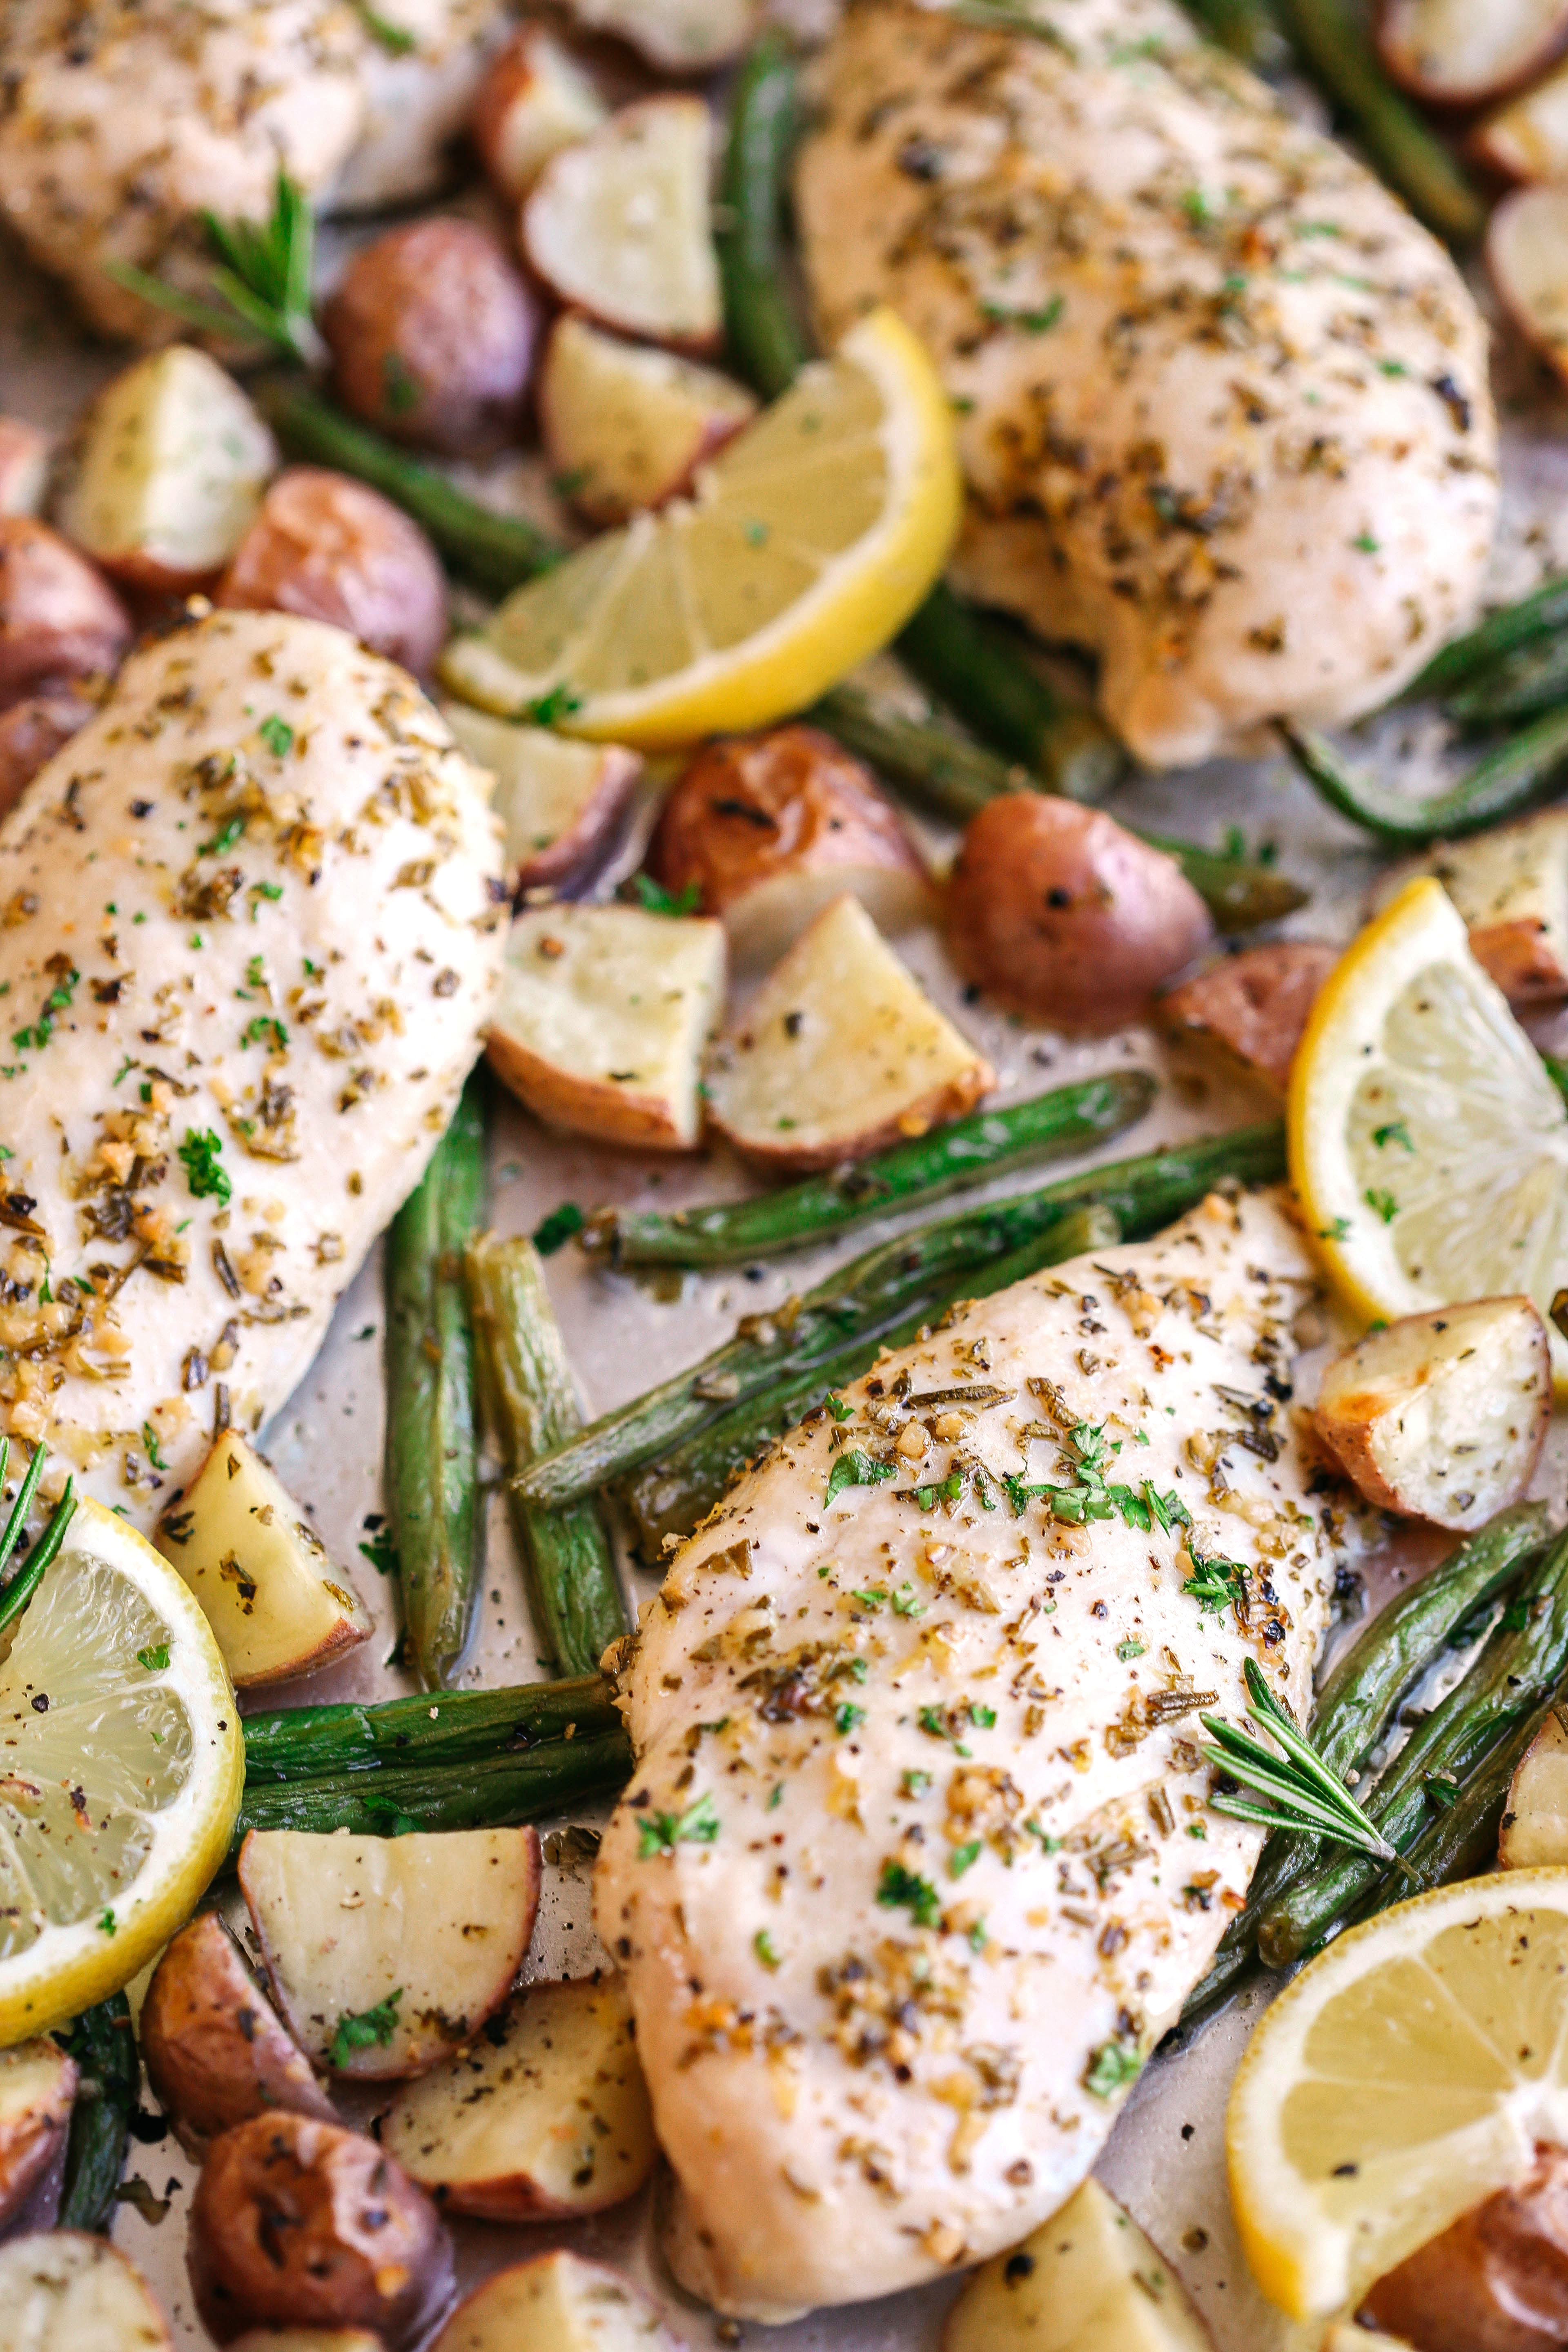 This Sheet Pan Lemon Rosemary Chicken and Potatoes make the perfect weeknight dinner that's quick, healthy and easily made all on one pan!